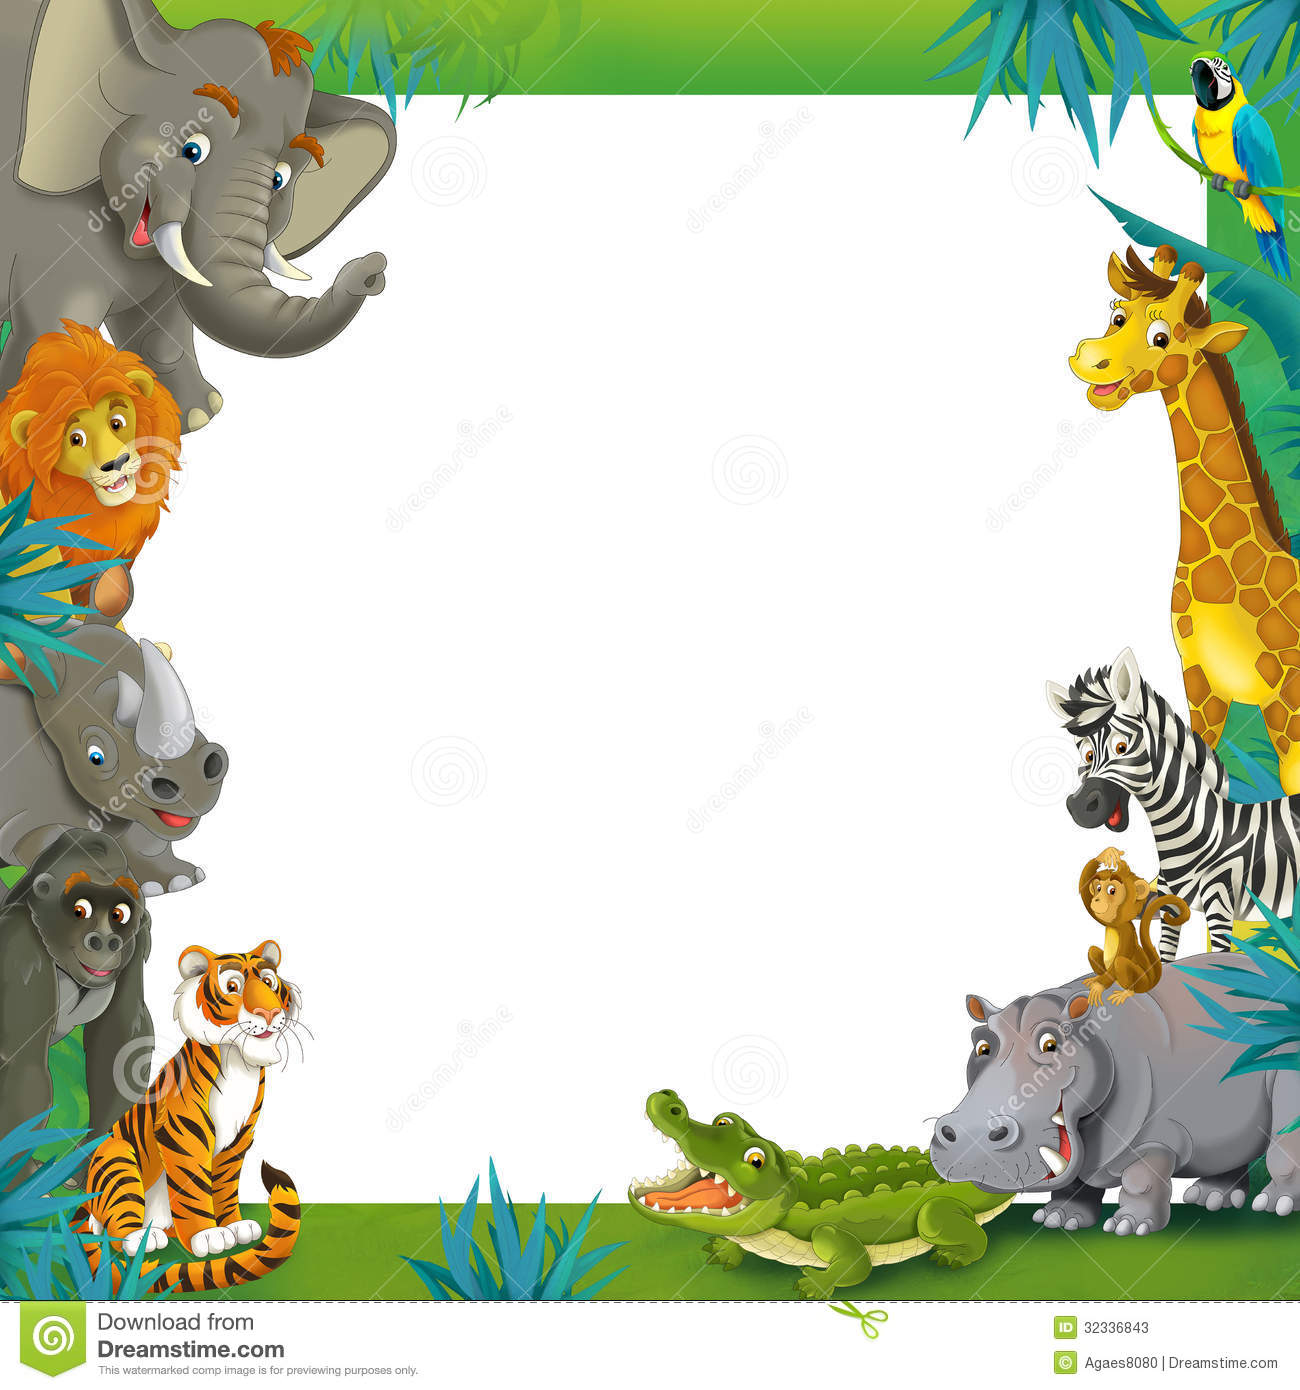 Jungle Animal Border Clipart - Clipart Suggest